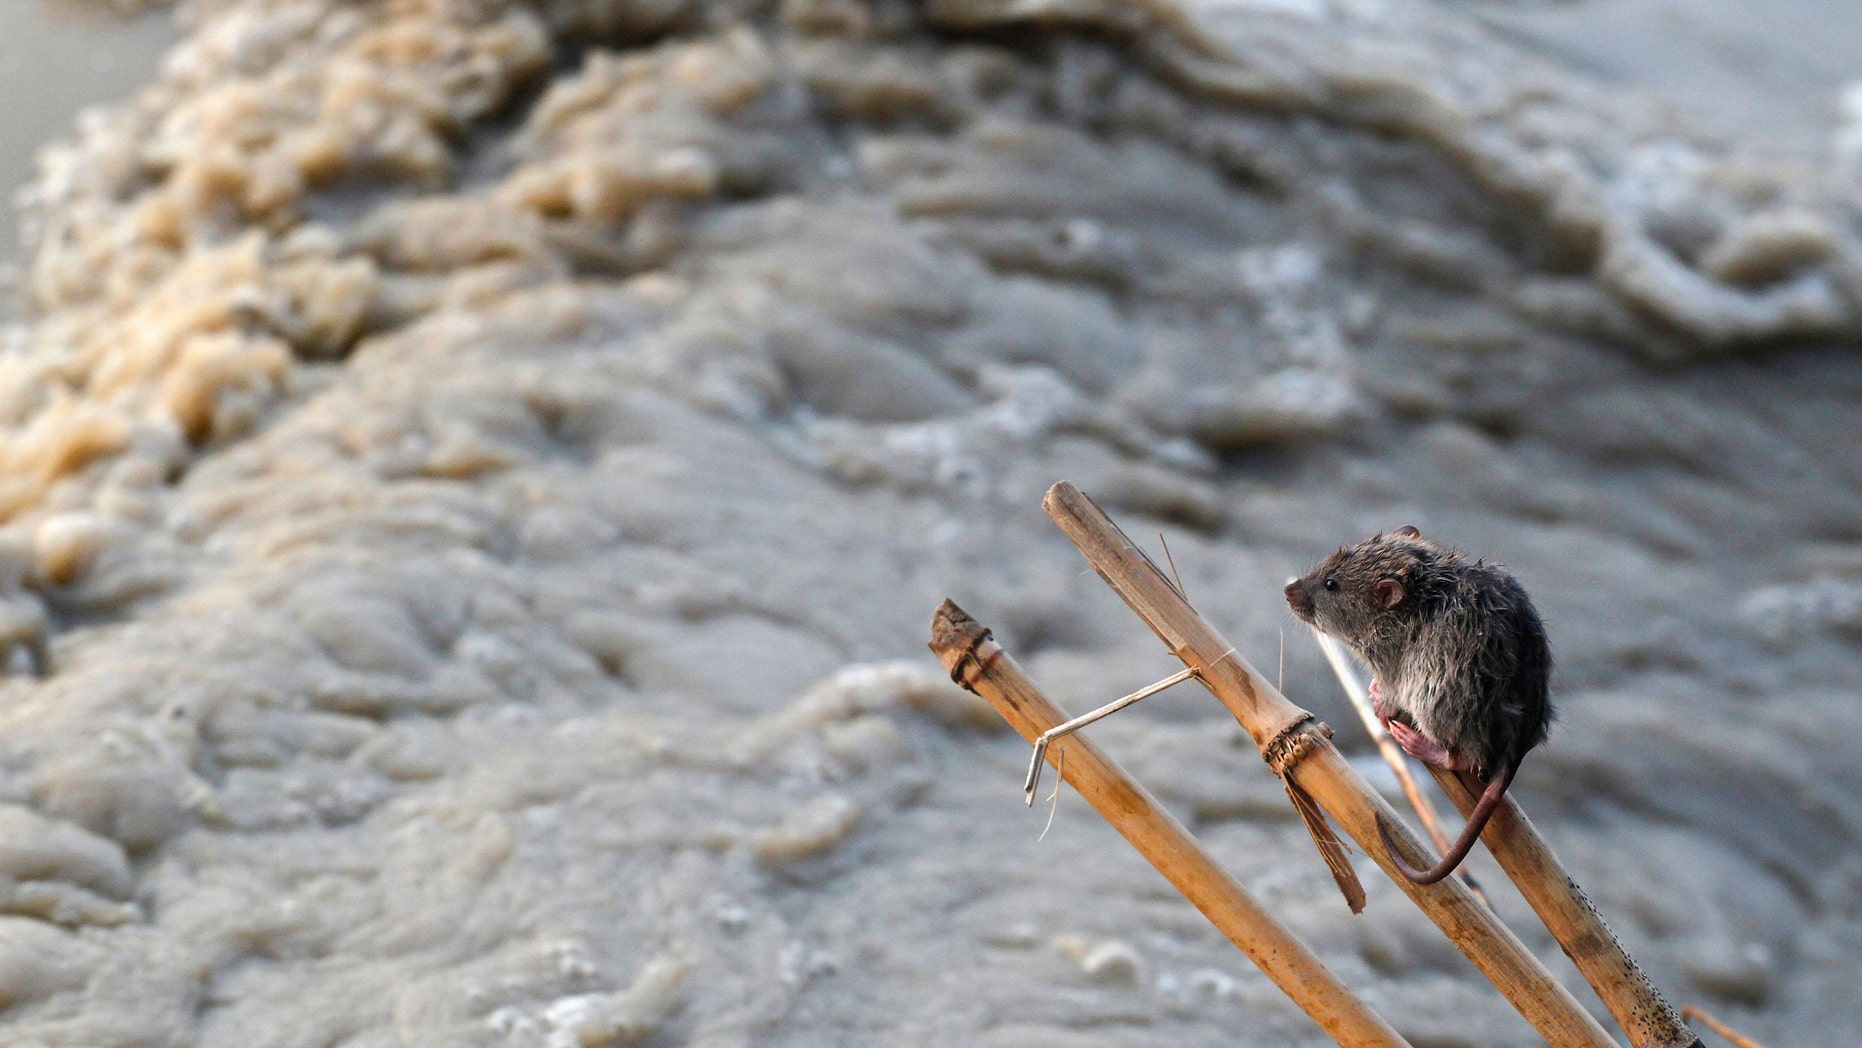 File photo: A stranded mouse rests on a stick next to the rising waters of river Yamuna in New Delhi June 19, 2013. The rains are at least twice as heavy as usual in northwest and central India as the June-September monsoon spreads north, covering the whole country a month faster than normal. (REUTERS/Anindito Mukherjee)